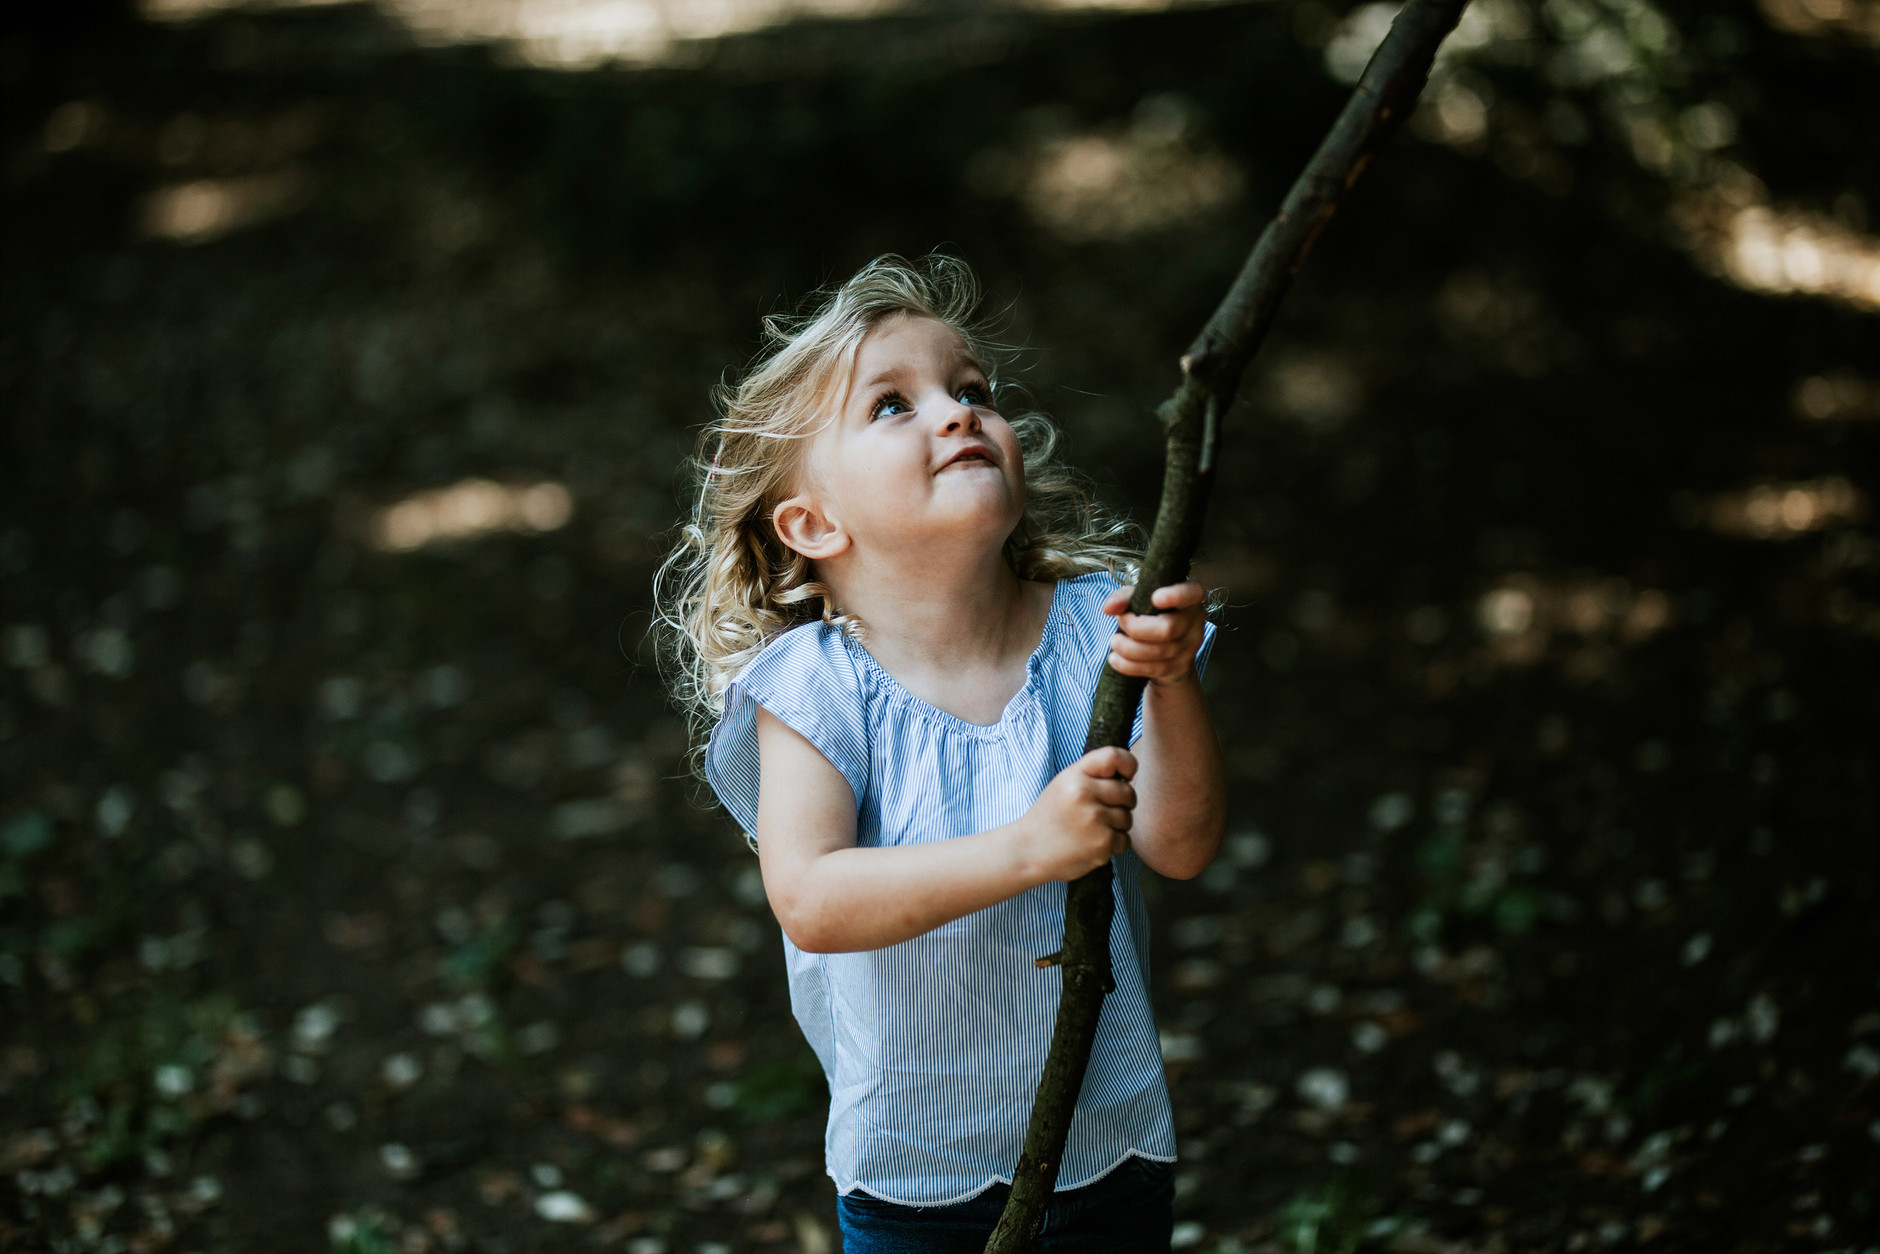 Little blond curly girl playing with a big stick in the park on their vacation in Dublin